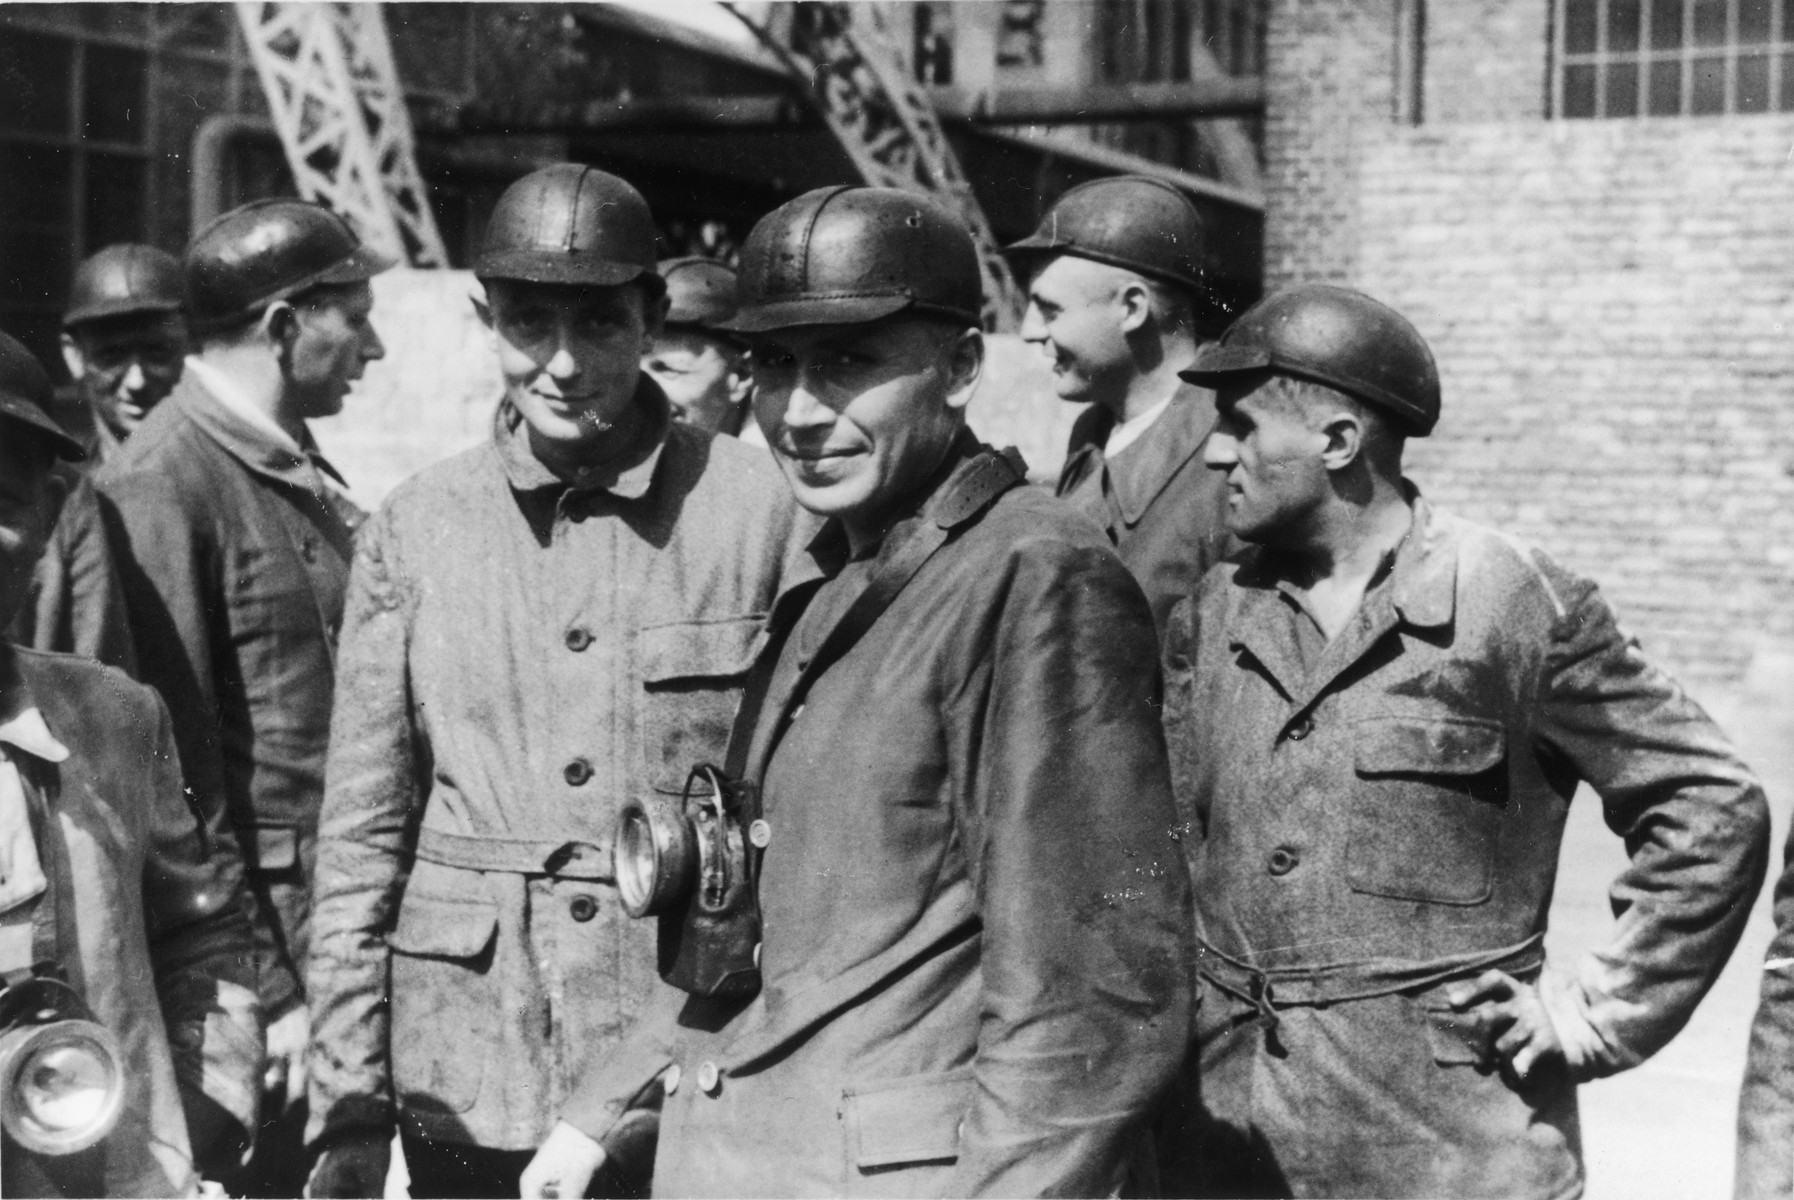 """A large group of SS officers visit a coal mine near Auschwitz.  The original caption reads """"Besichtigung eines Kohlenbergwerks."""" (visiting a coal mine)  Pictured from left to right are unknown, Dr. Heinz Baumkoetter, Gerhard Gerber, Dr. Enno Lolling (partially obscured) , Karl Hoecker (center), Dr. Eduard Wirths and Alfred Trzebinski."""